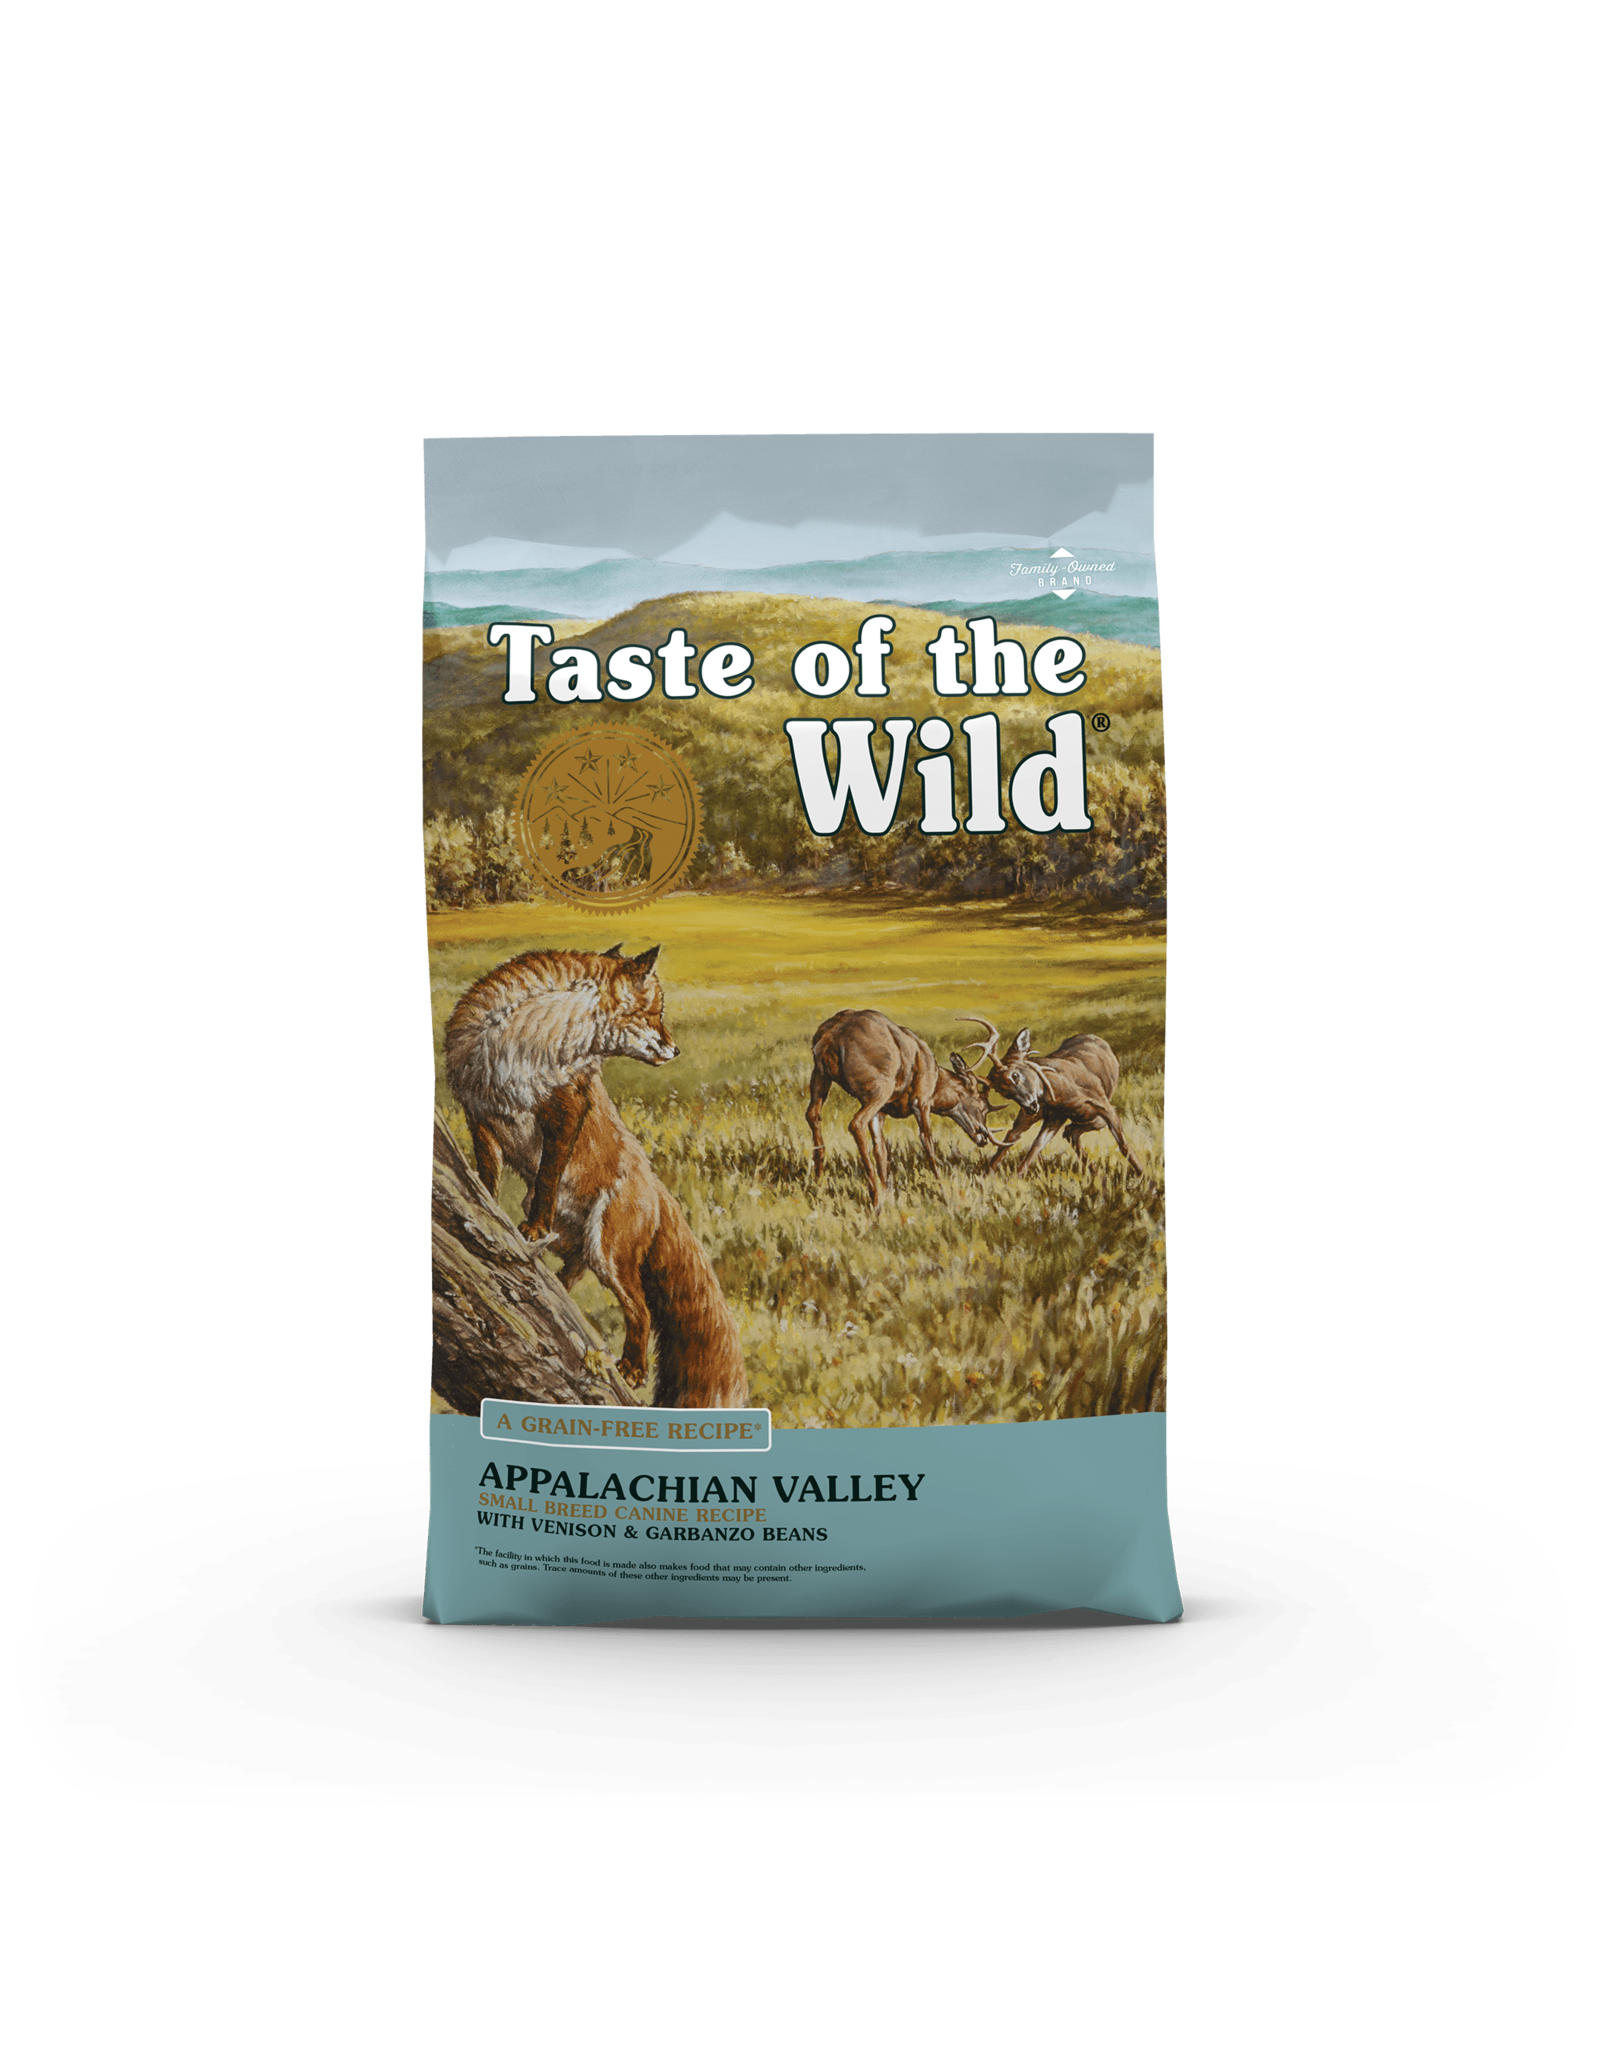 Taste of the Wild Taste of the Wild Appalachian Valley Small Breed Dog Food 5lb